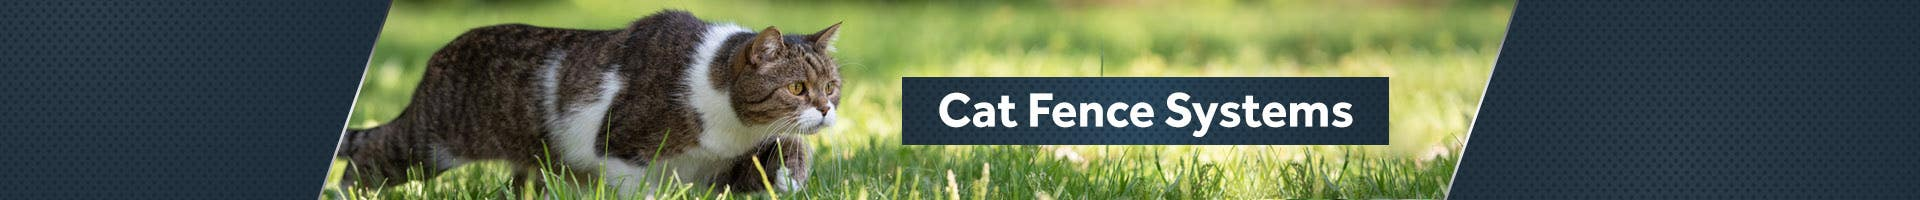 Cat Fence Systems